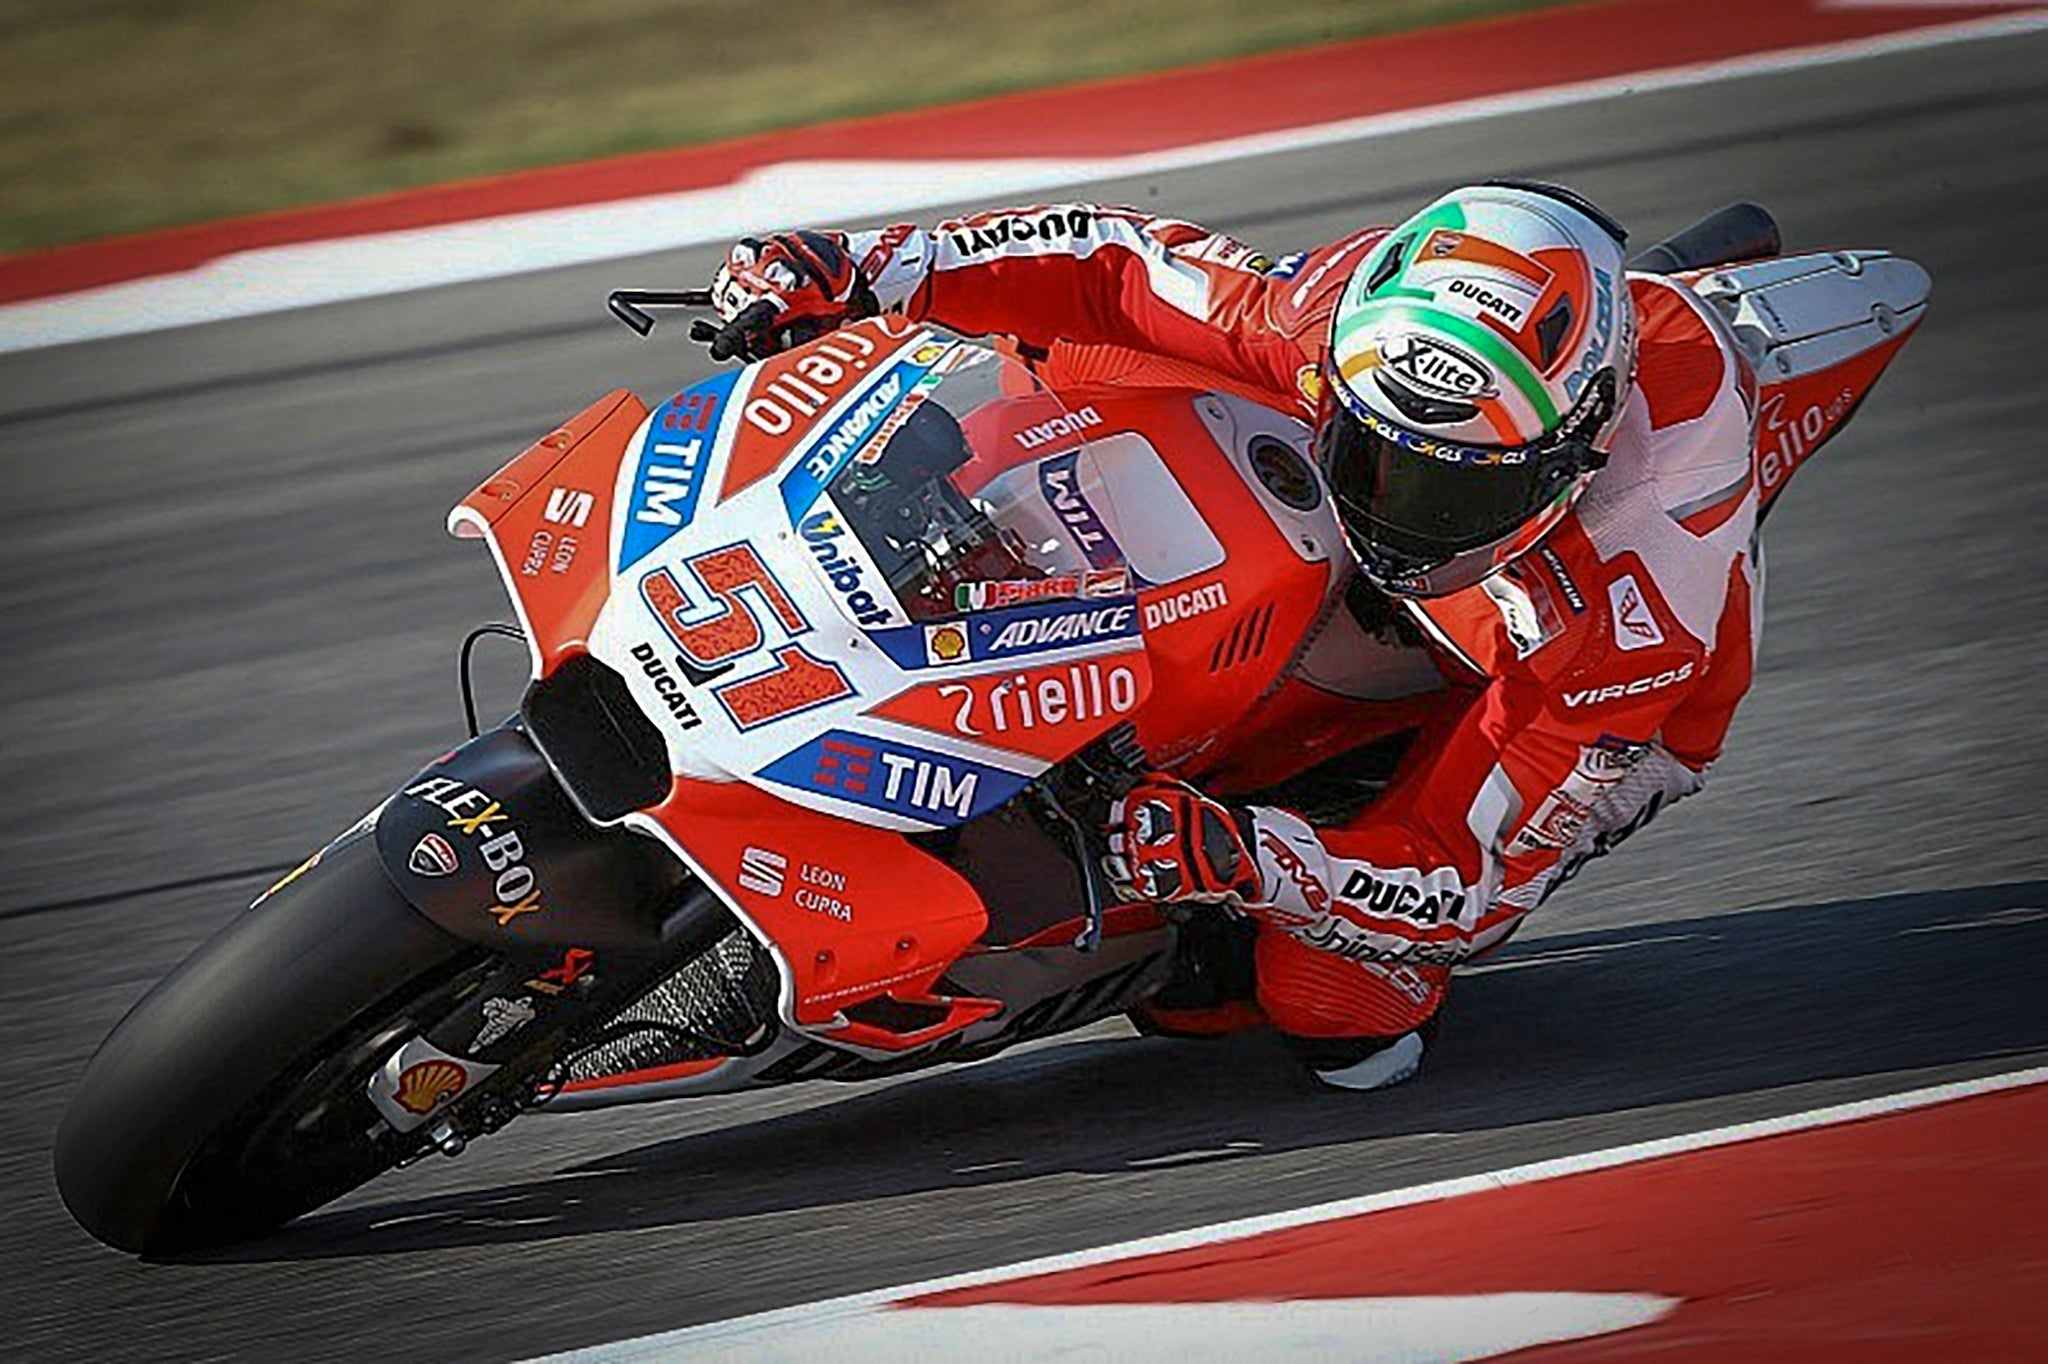 Michele Pirro on Ducati at the MotoGP